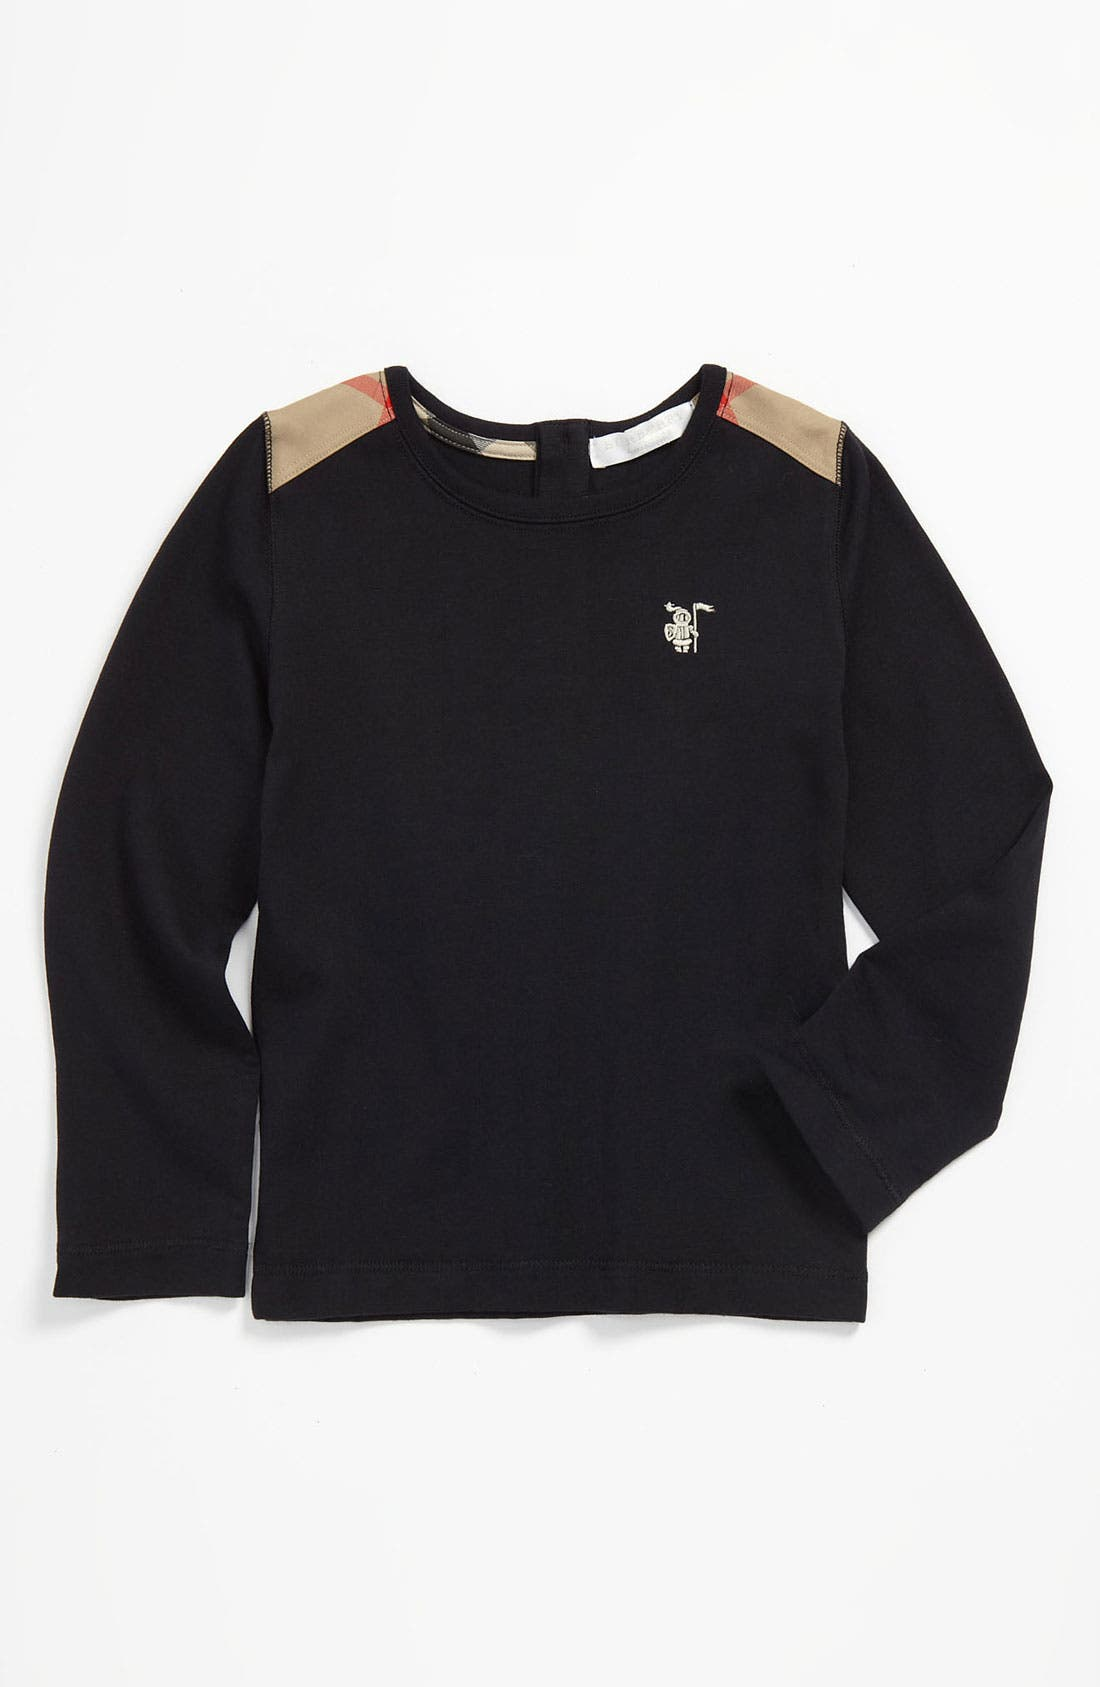 Main Image - Burberry Shoulder Patch T-Shirt (Infant)